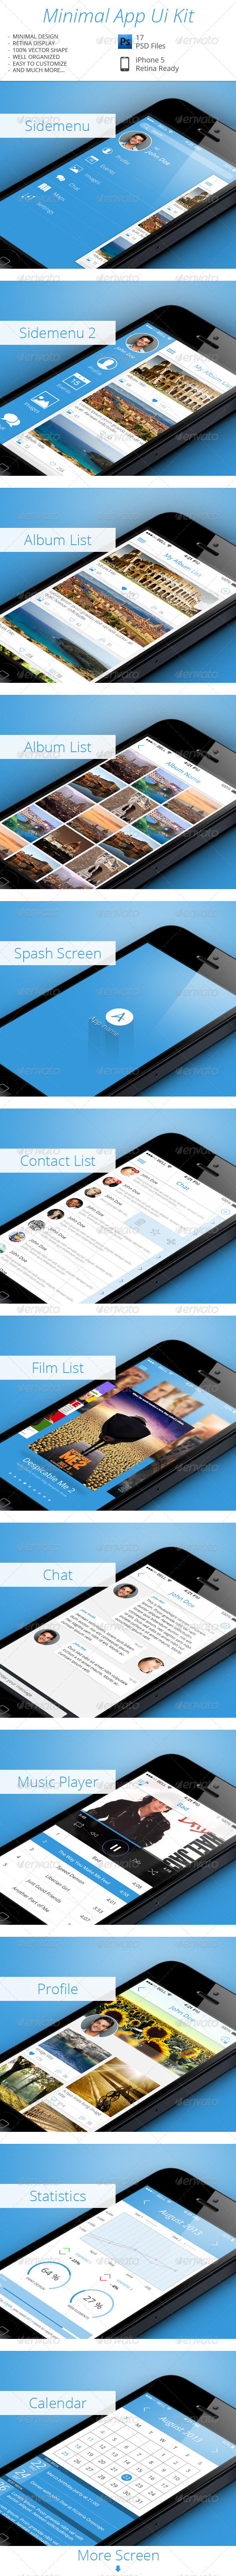 GraphicRiver Minimal App UI Kit 5656803